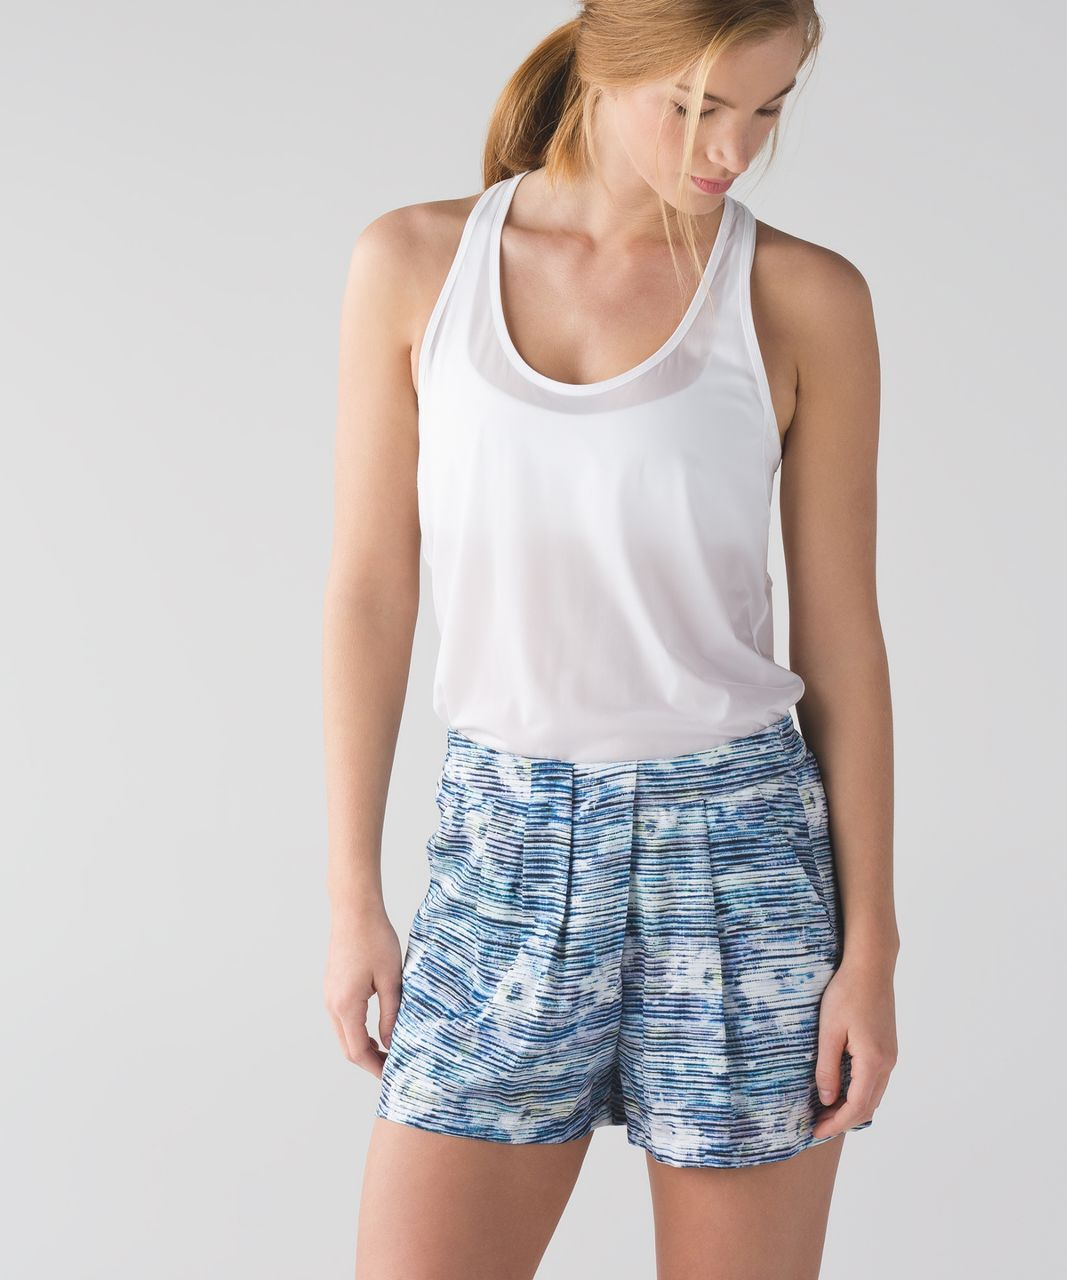 Lululemon &go Keepsake Short - Blurry Belle Multi